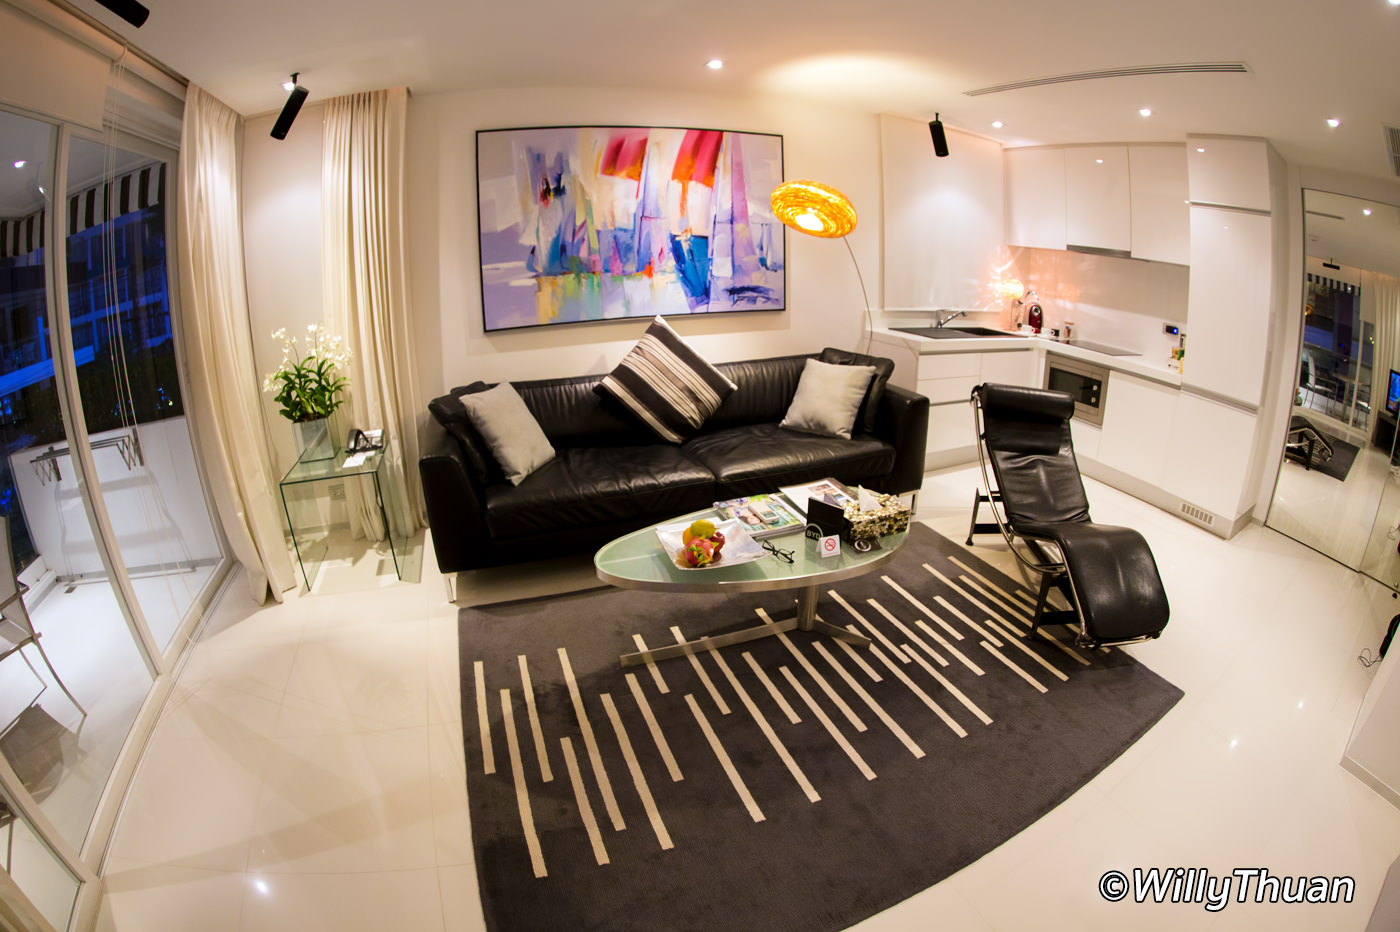 BYD Lofts Boutique Hotel & Serviced Apartments Phuket, Patong Beach